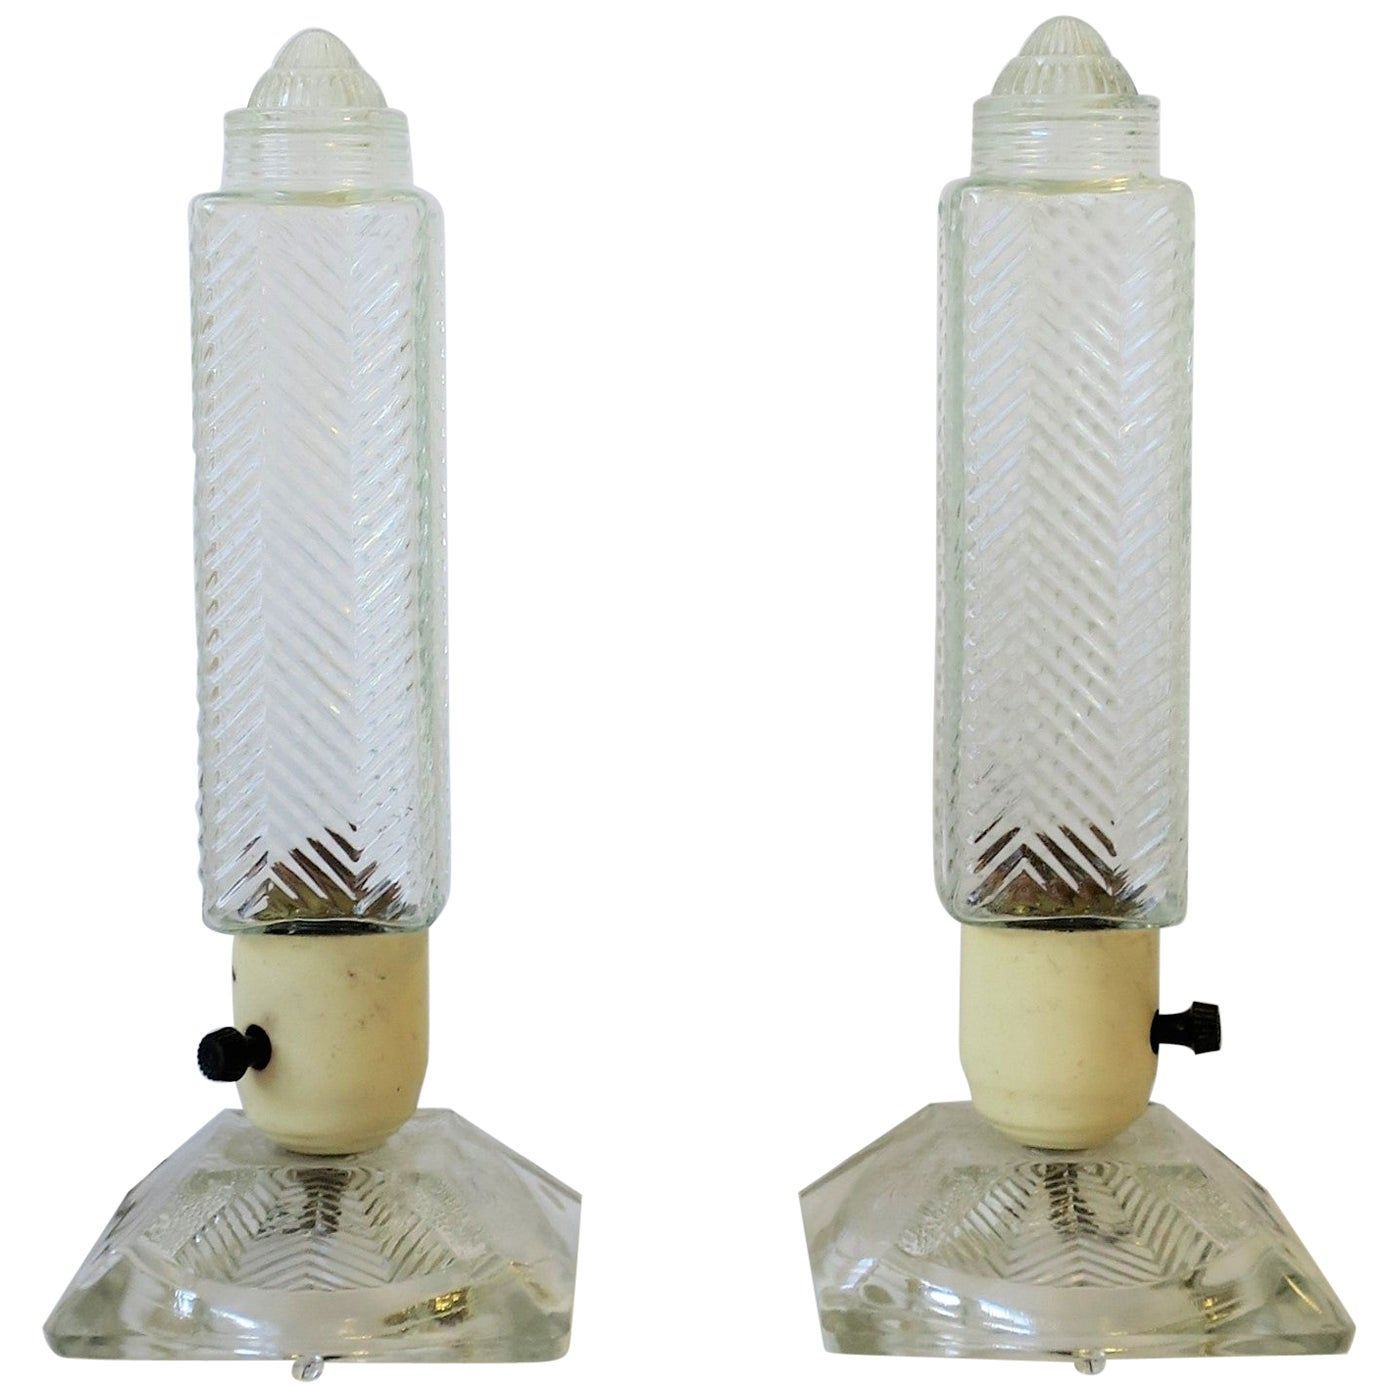 Art Deco Period Glass Table or Bedside Lamps, Pair